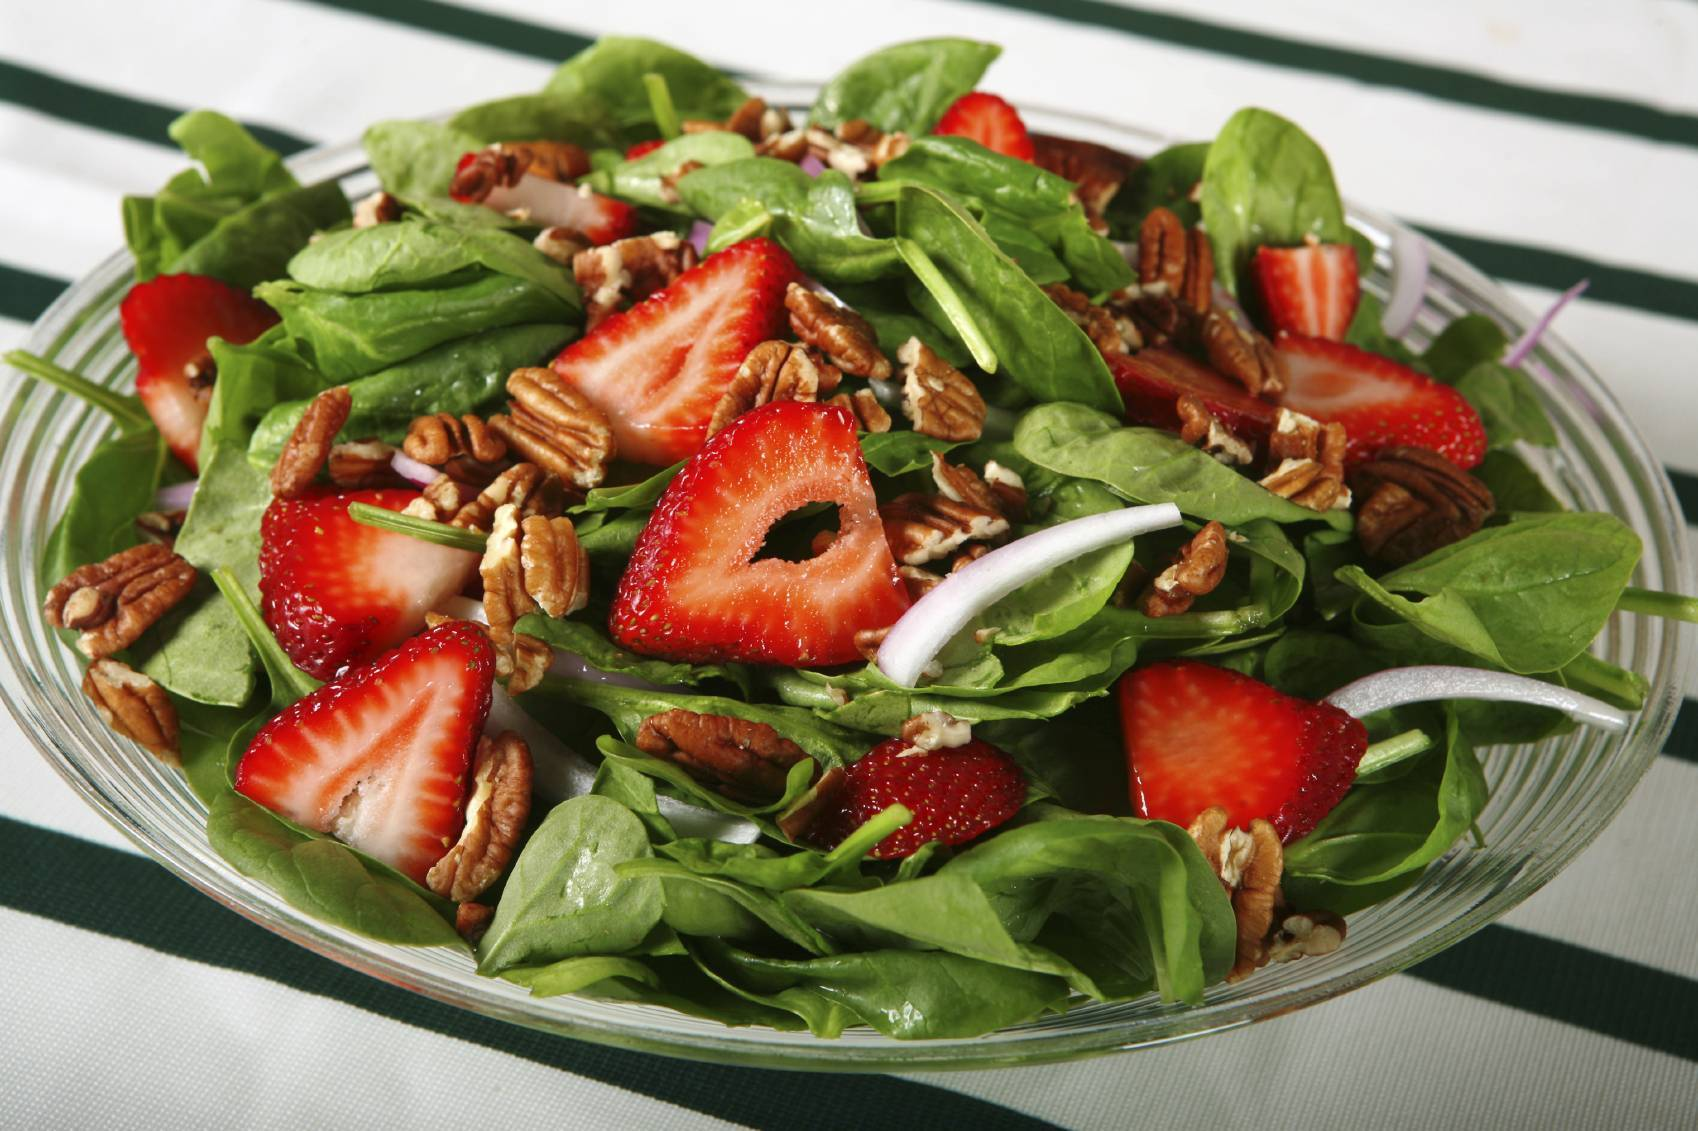 Spinach Salad with Strawberries & Poppy Seed Dressing